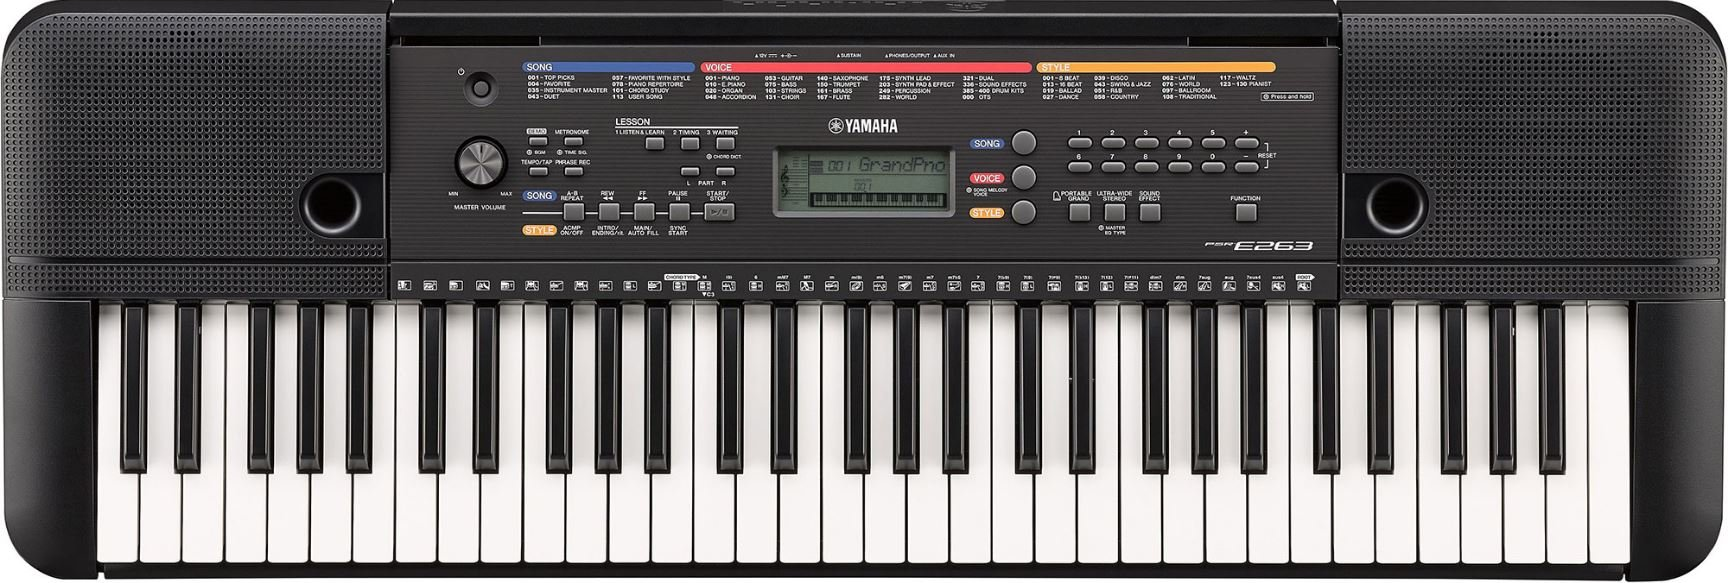 Yamaha PSRE263 61-Key Entry-Level Portable Keyboard